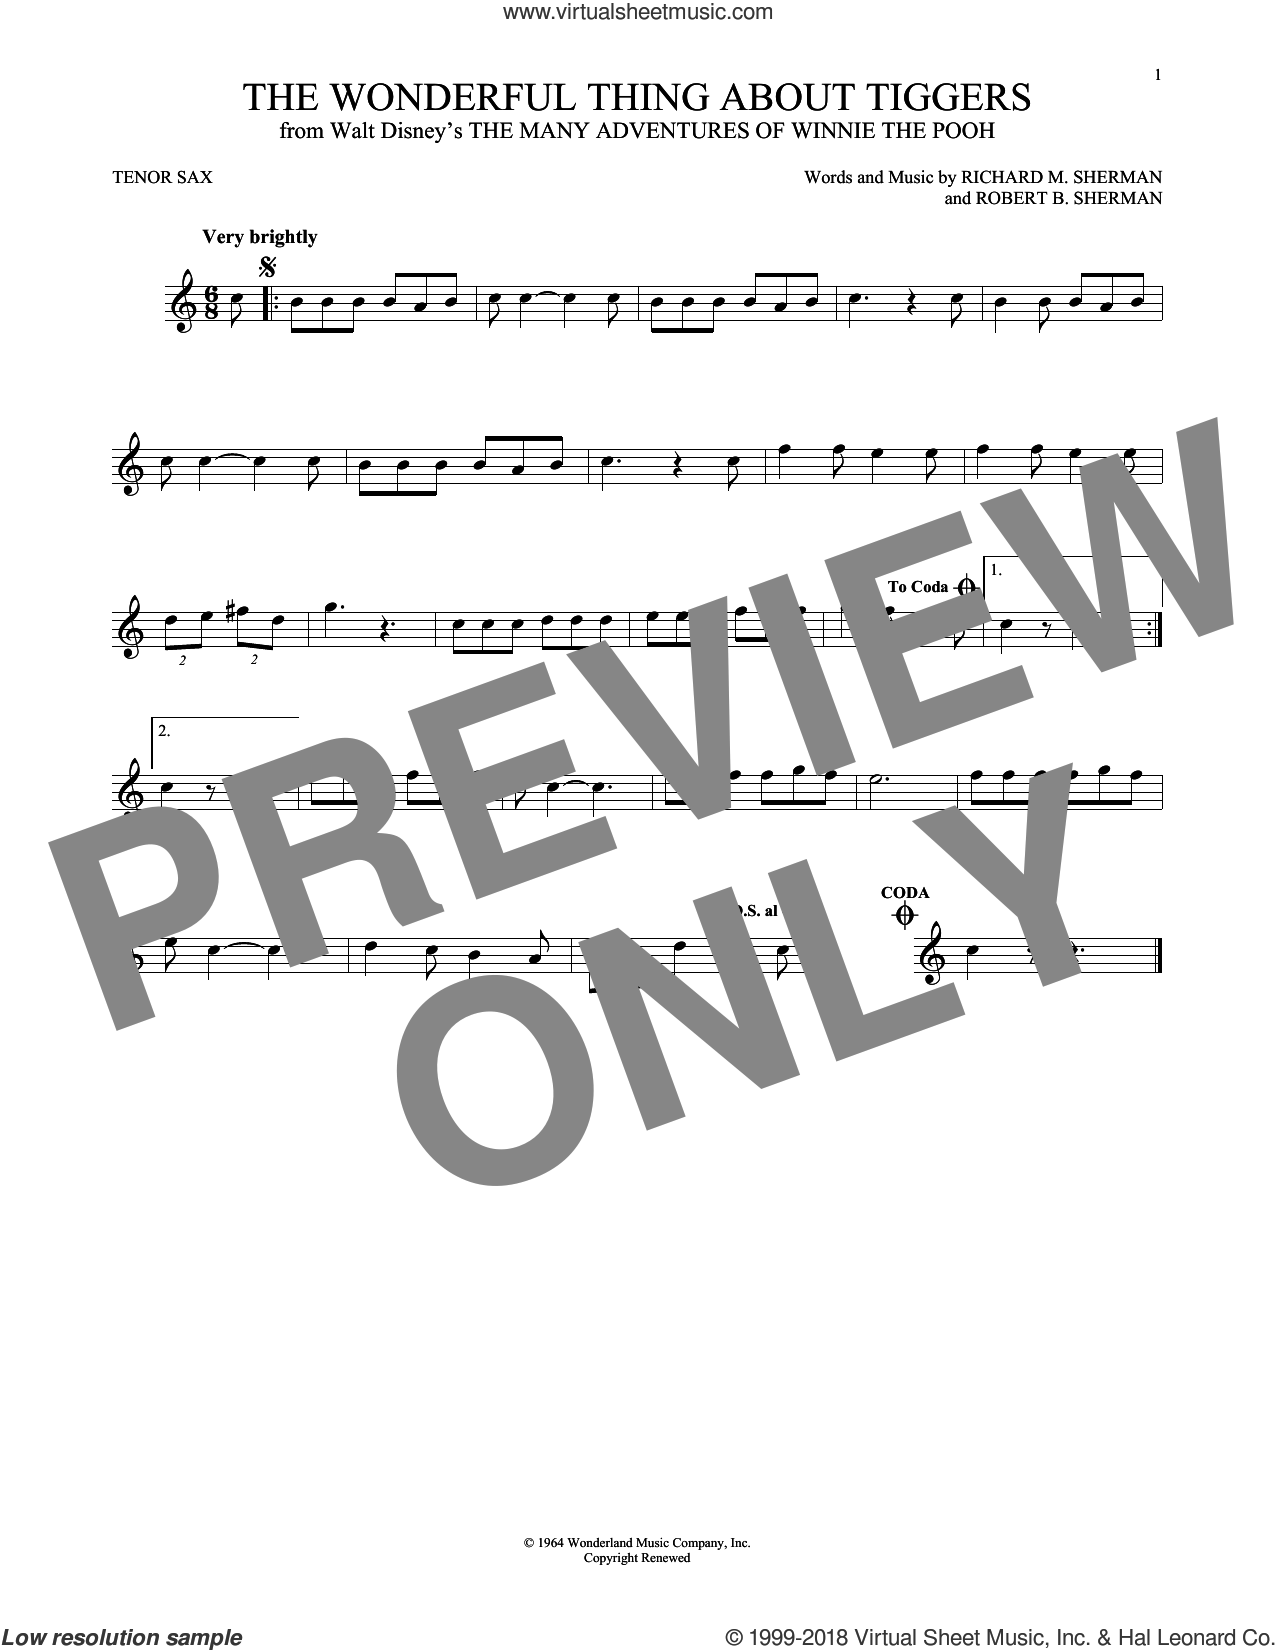 The Wonderful Thing About Tiggers sheet music for tenor saxophone solo by Richard M. Sherman, Richard & Robert Sherman and Robert B. Sherman, intermediate skill level